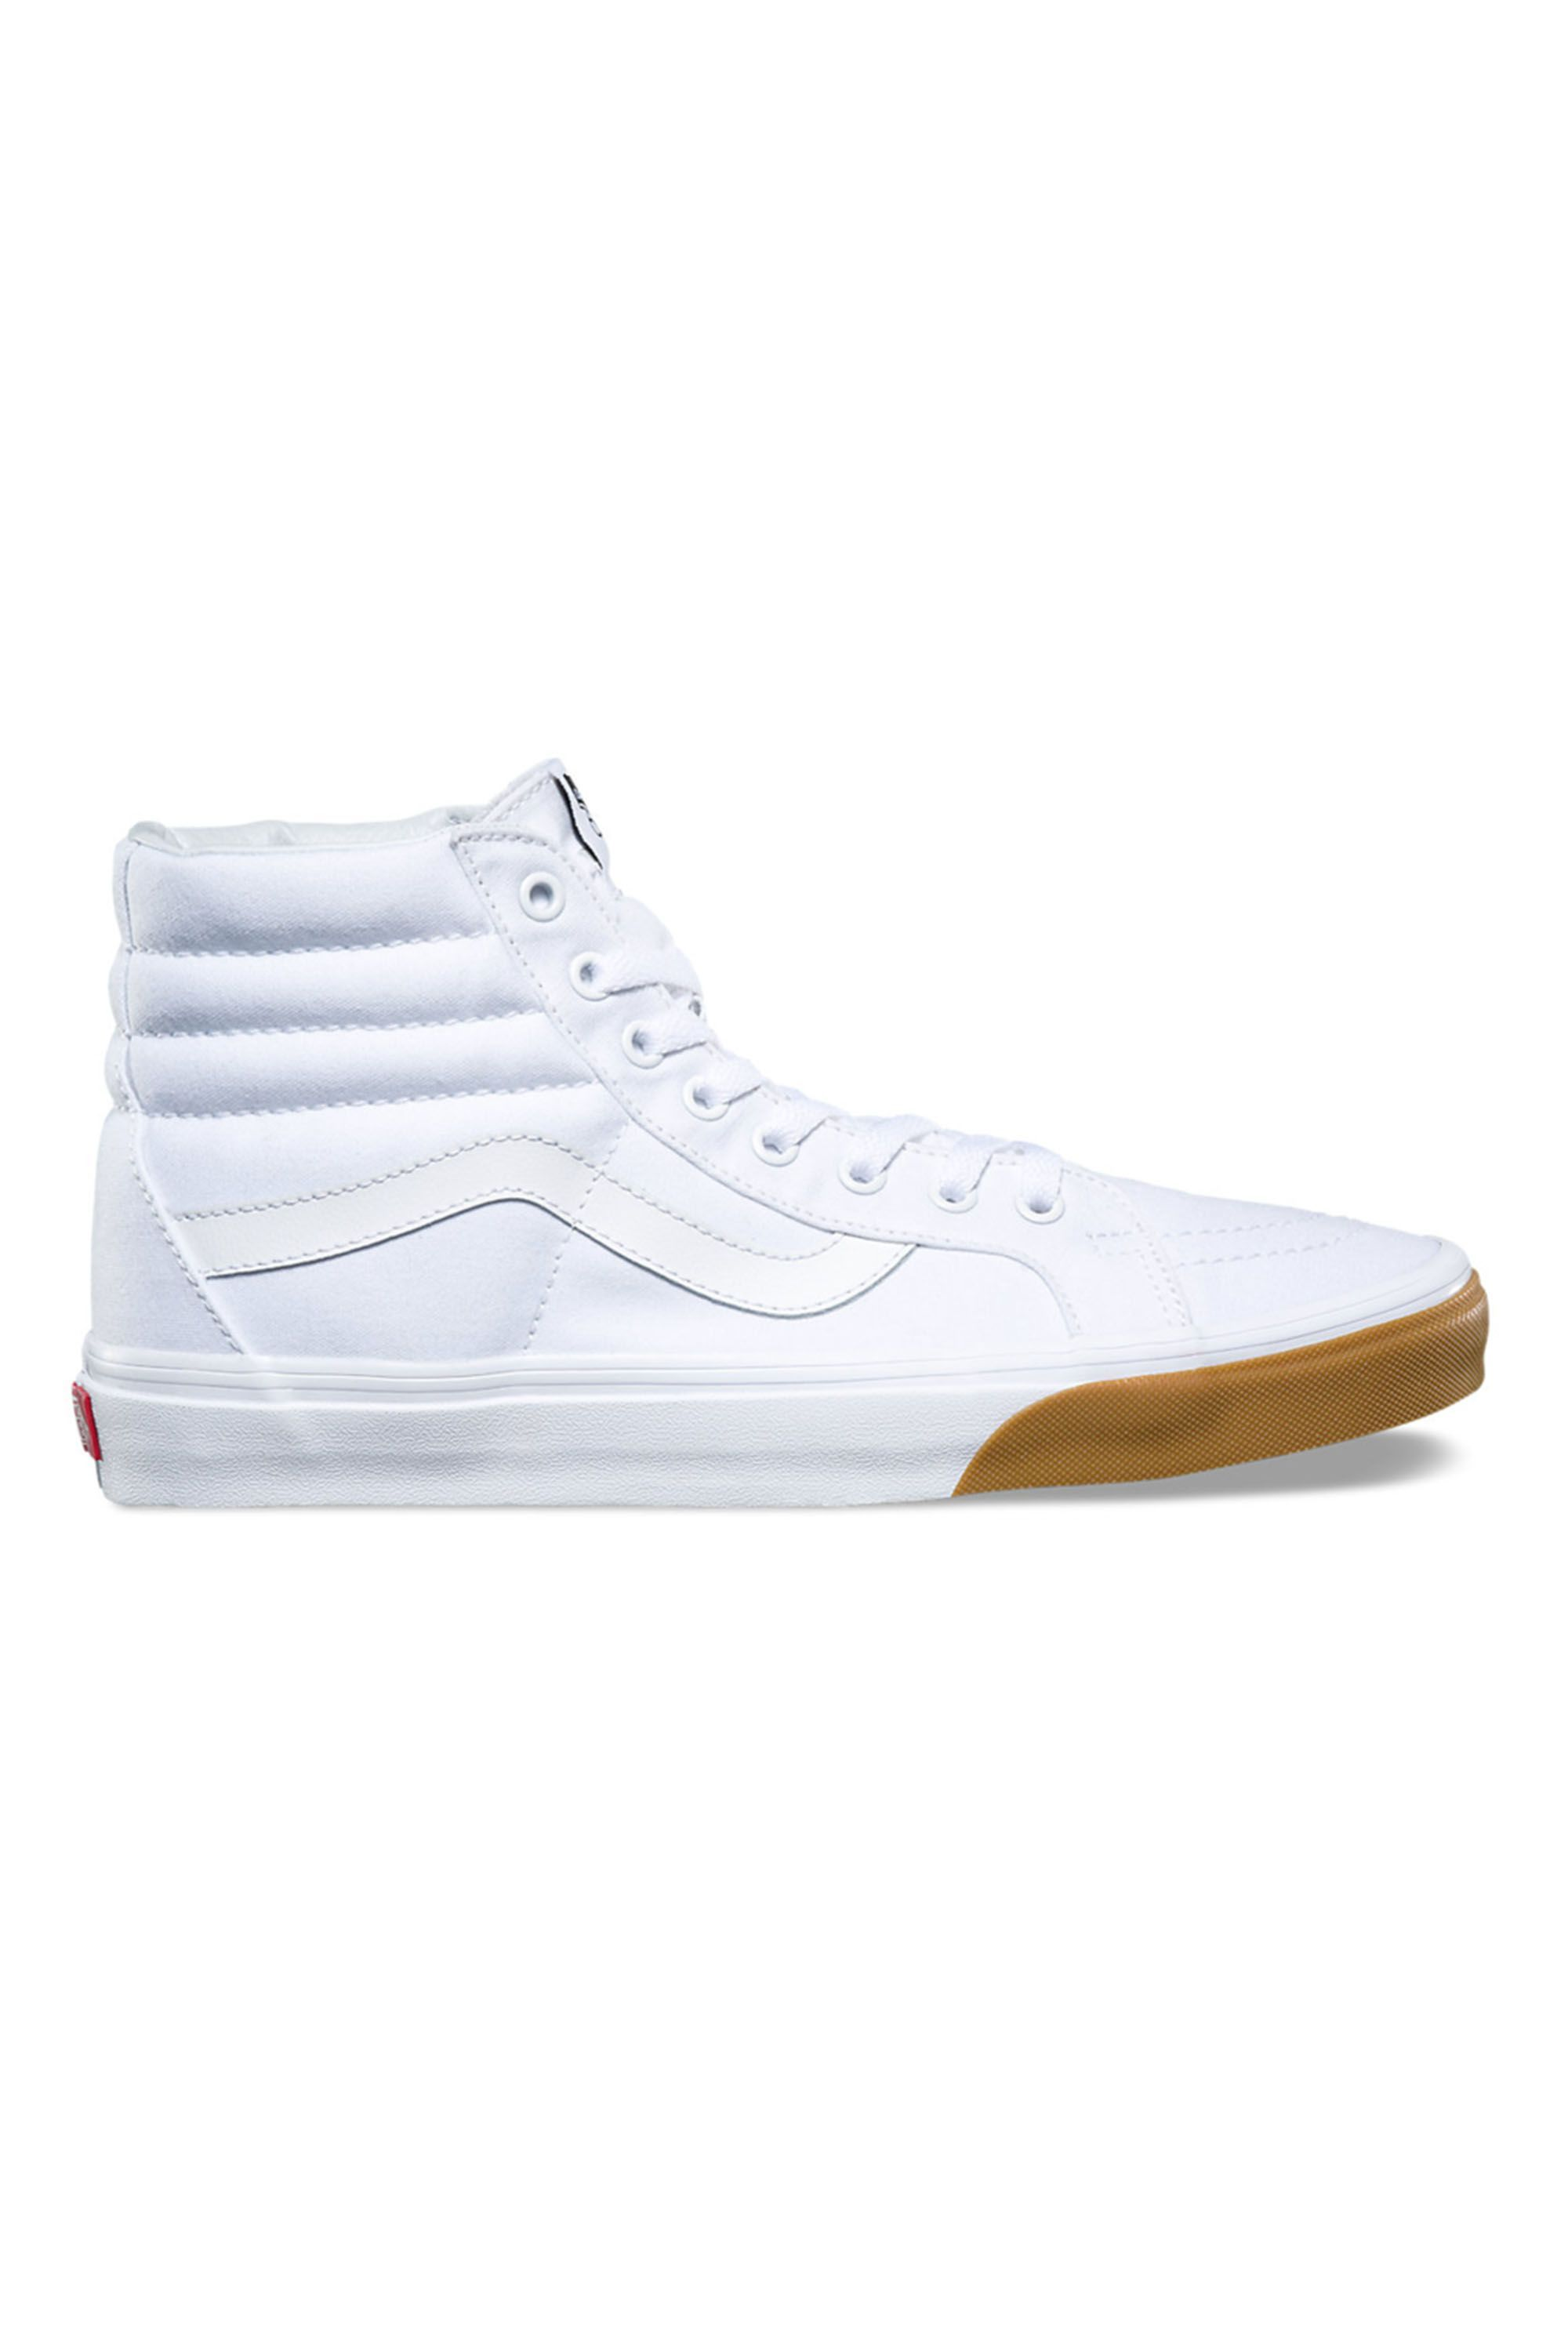 7e7580c0fd 26 Best White Sneakers for 2018 - Classic White Shoes That Go With  Everything